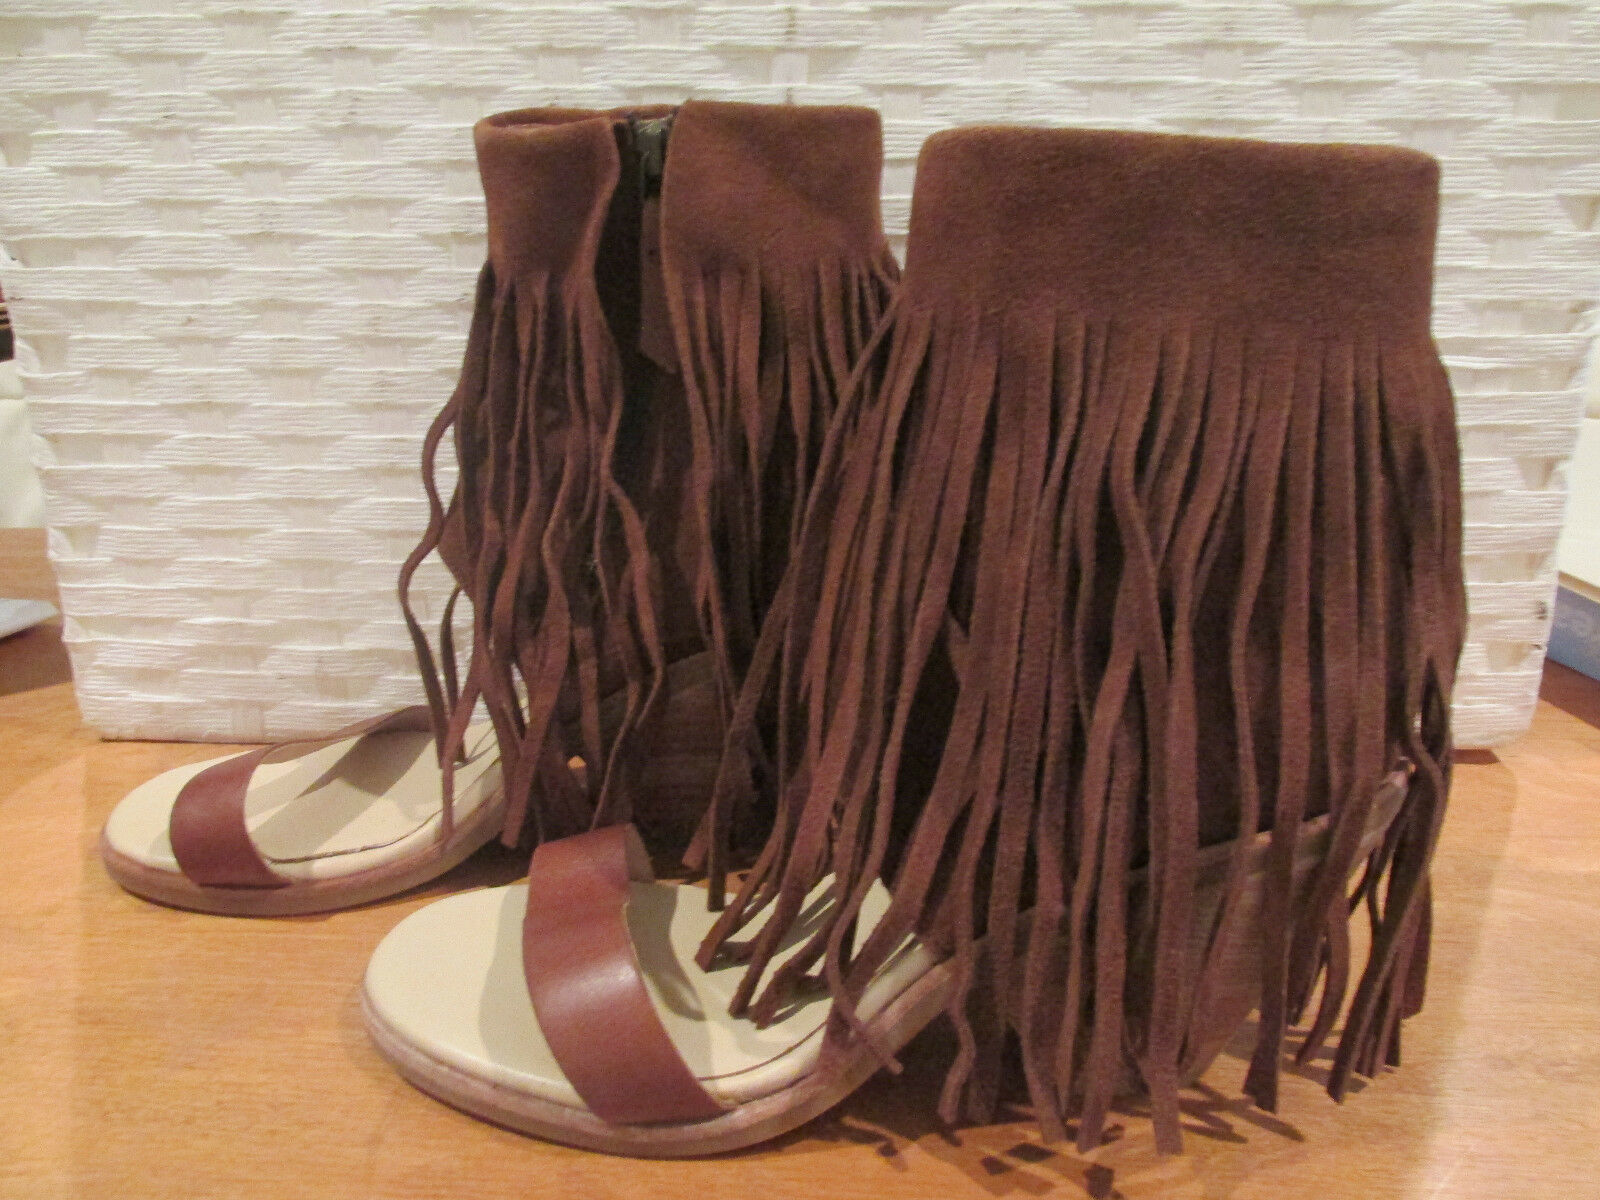 KOOLABURRA PIAZ BROWN FRINGE SANDALS SIZE 8.5 SIDE TOE ZIP CUBAN HEEL OPEN TOE SIDE NWOT 8deac0